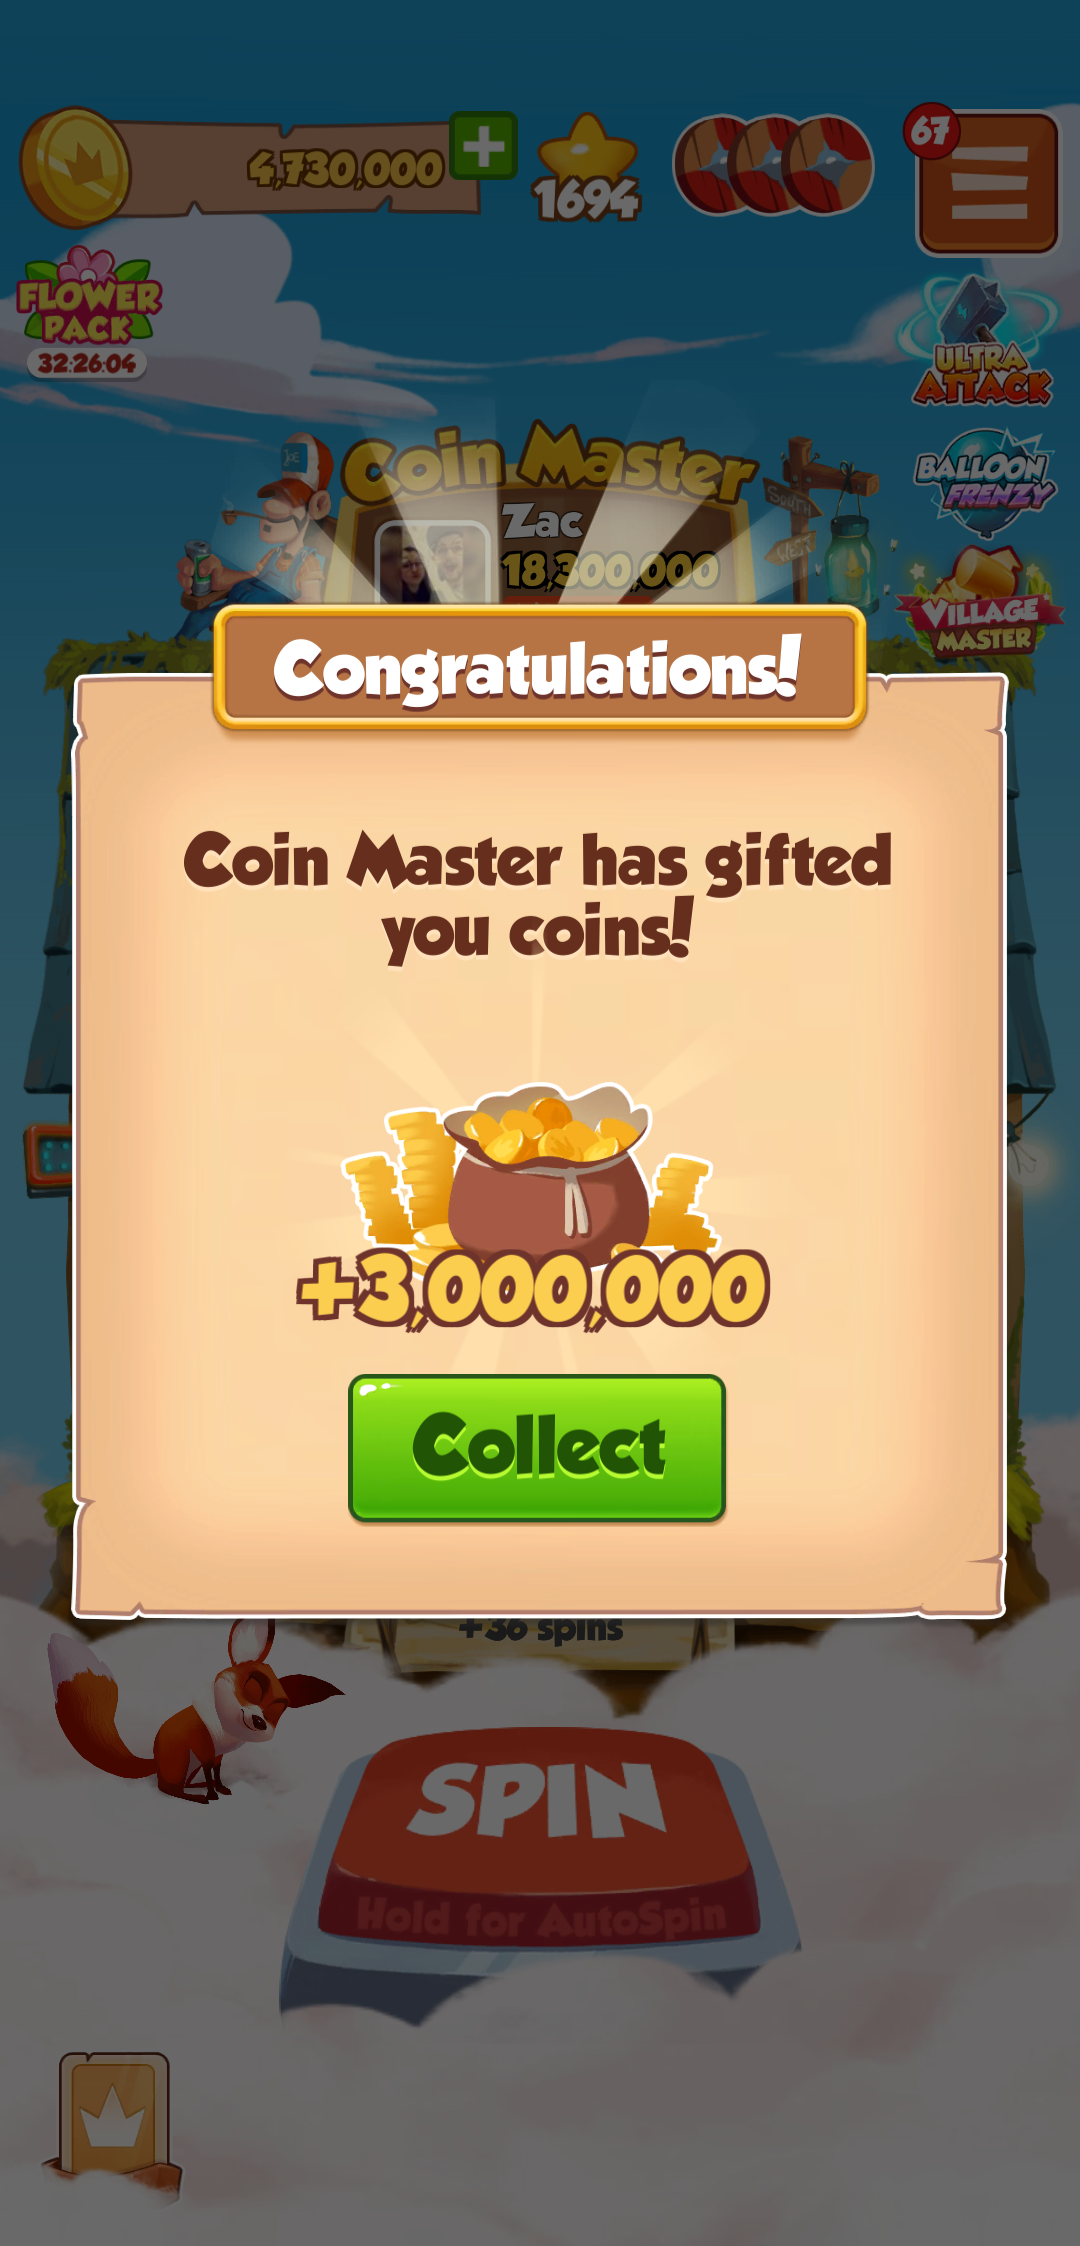 coin master free coins and spins 2020